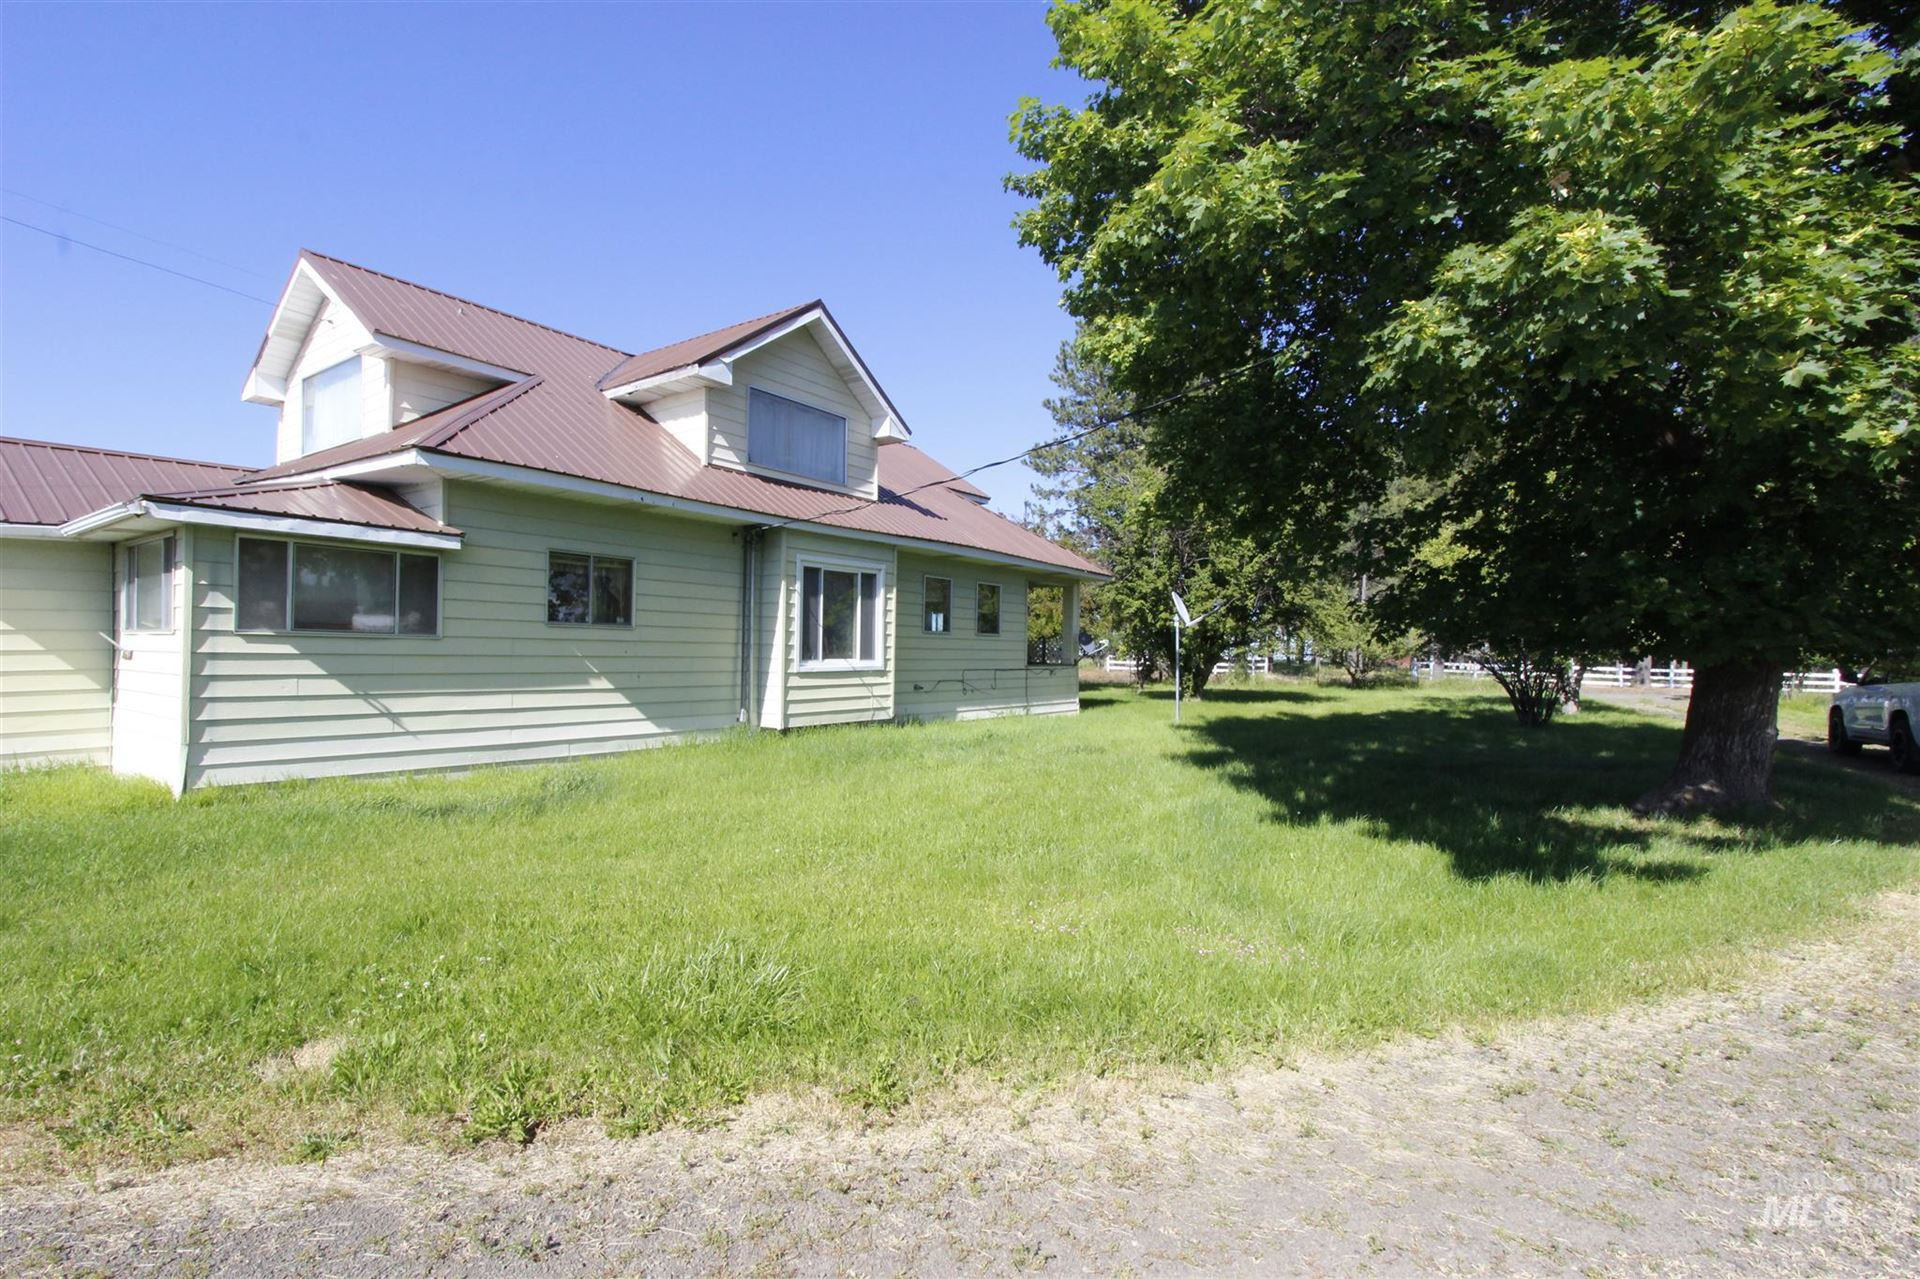 Photo of 1821 Winchester Rd 83524, Winchester, ID 83524 (MLS # 98775877)